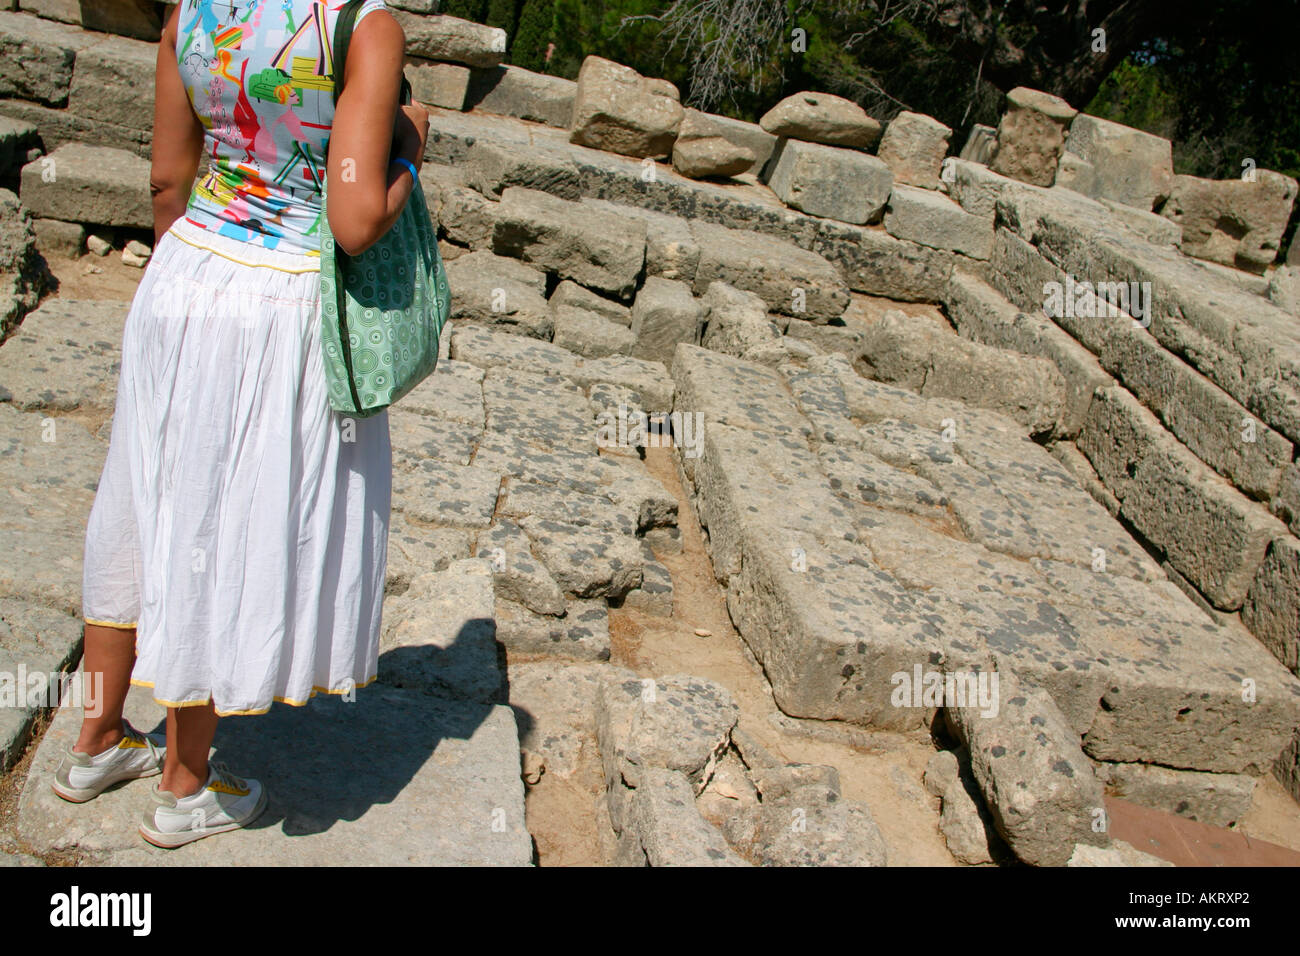 A tourist in front of the Filerimos ruins, Rhodes Island - Stock Image